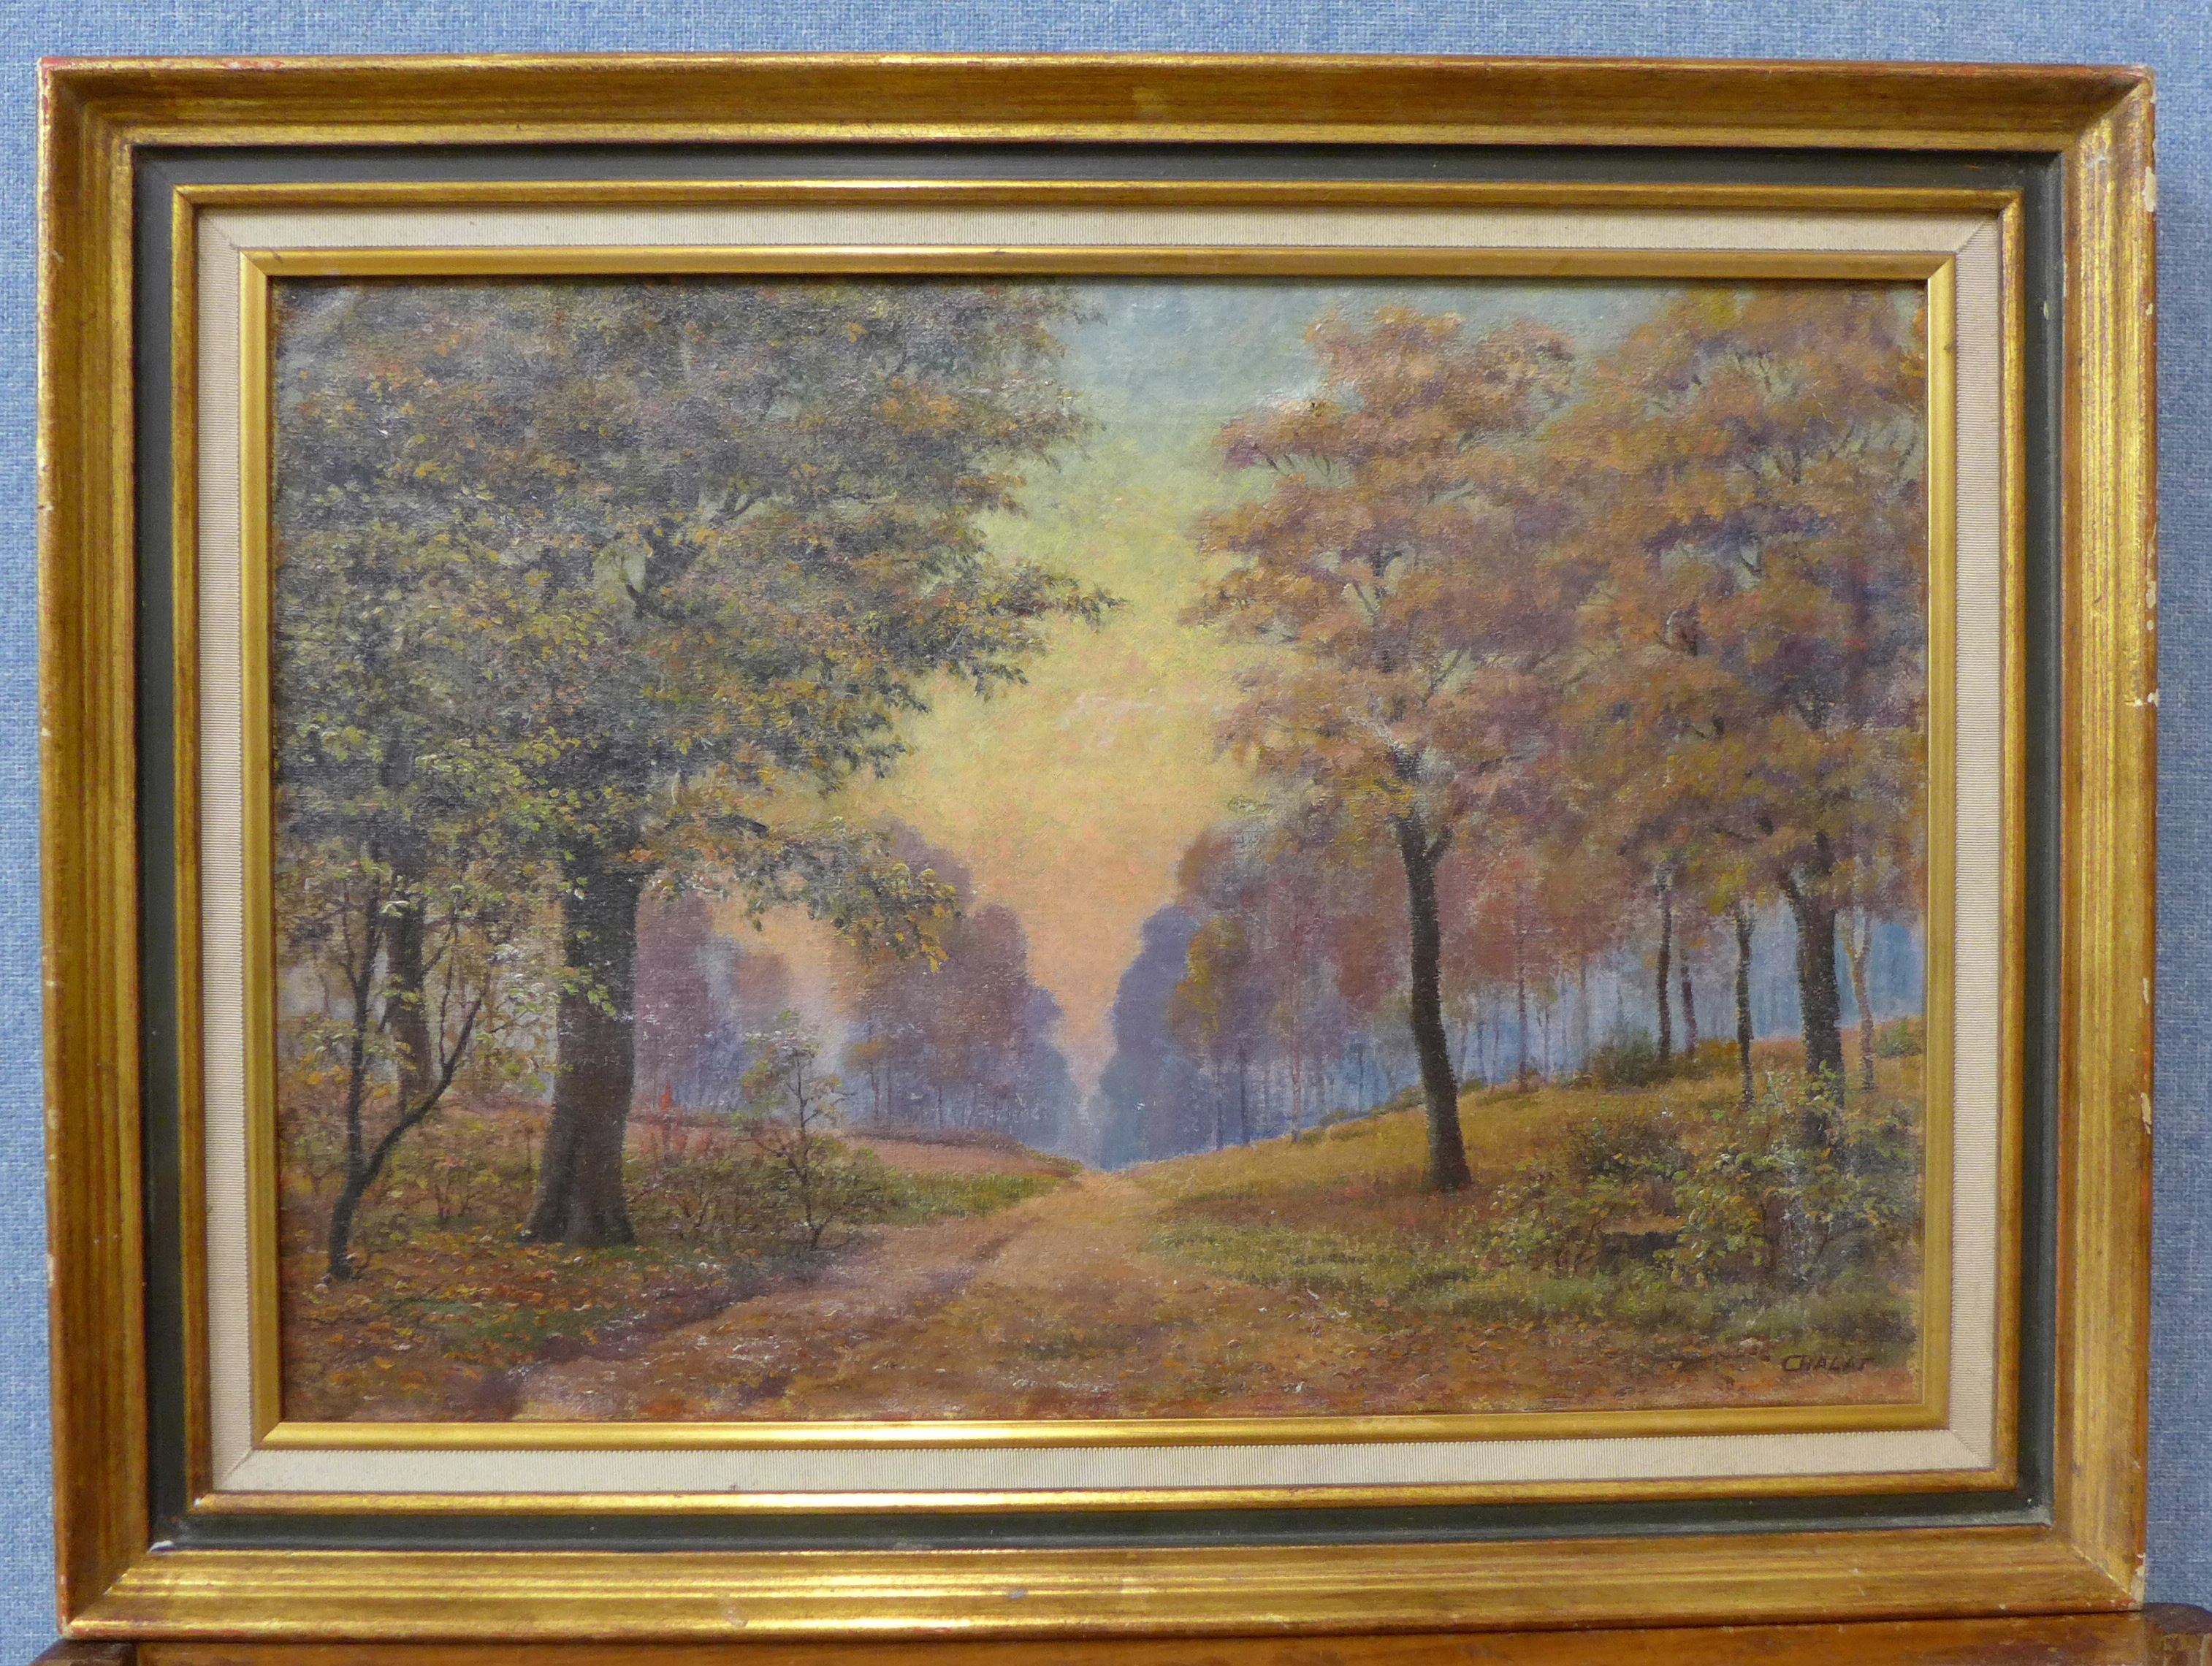 Lot 10 - French Impressionist School, rural landscape, oil on canvas, indistinctly signed, 37 x 54cms,